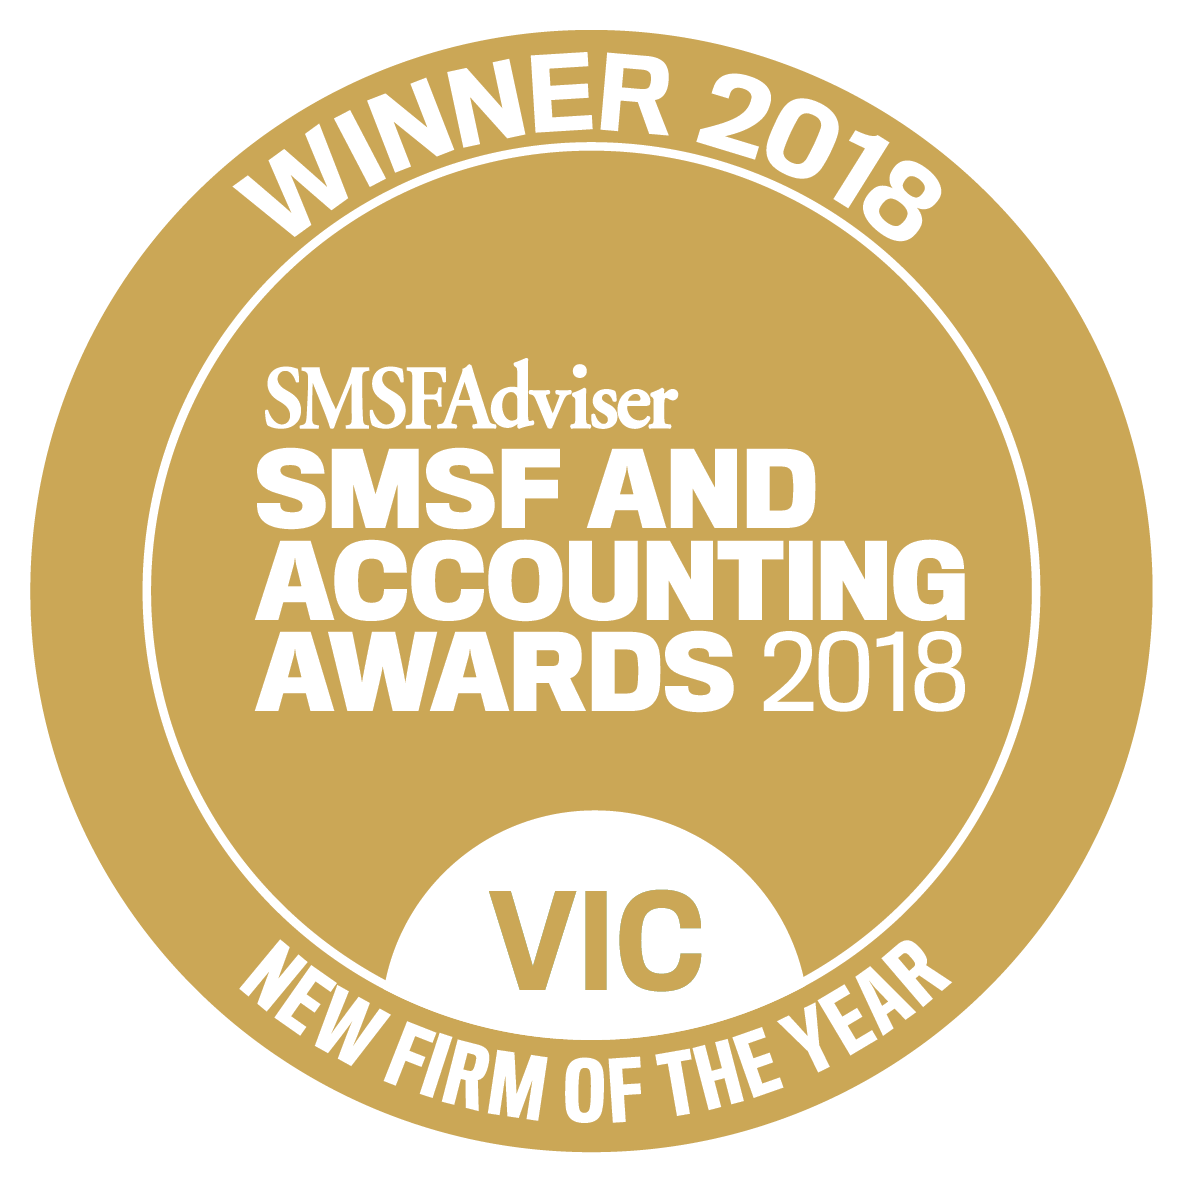 SMSF New Firm of the Year award